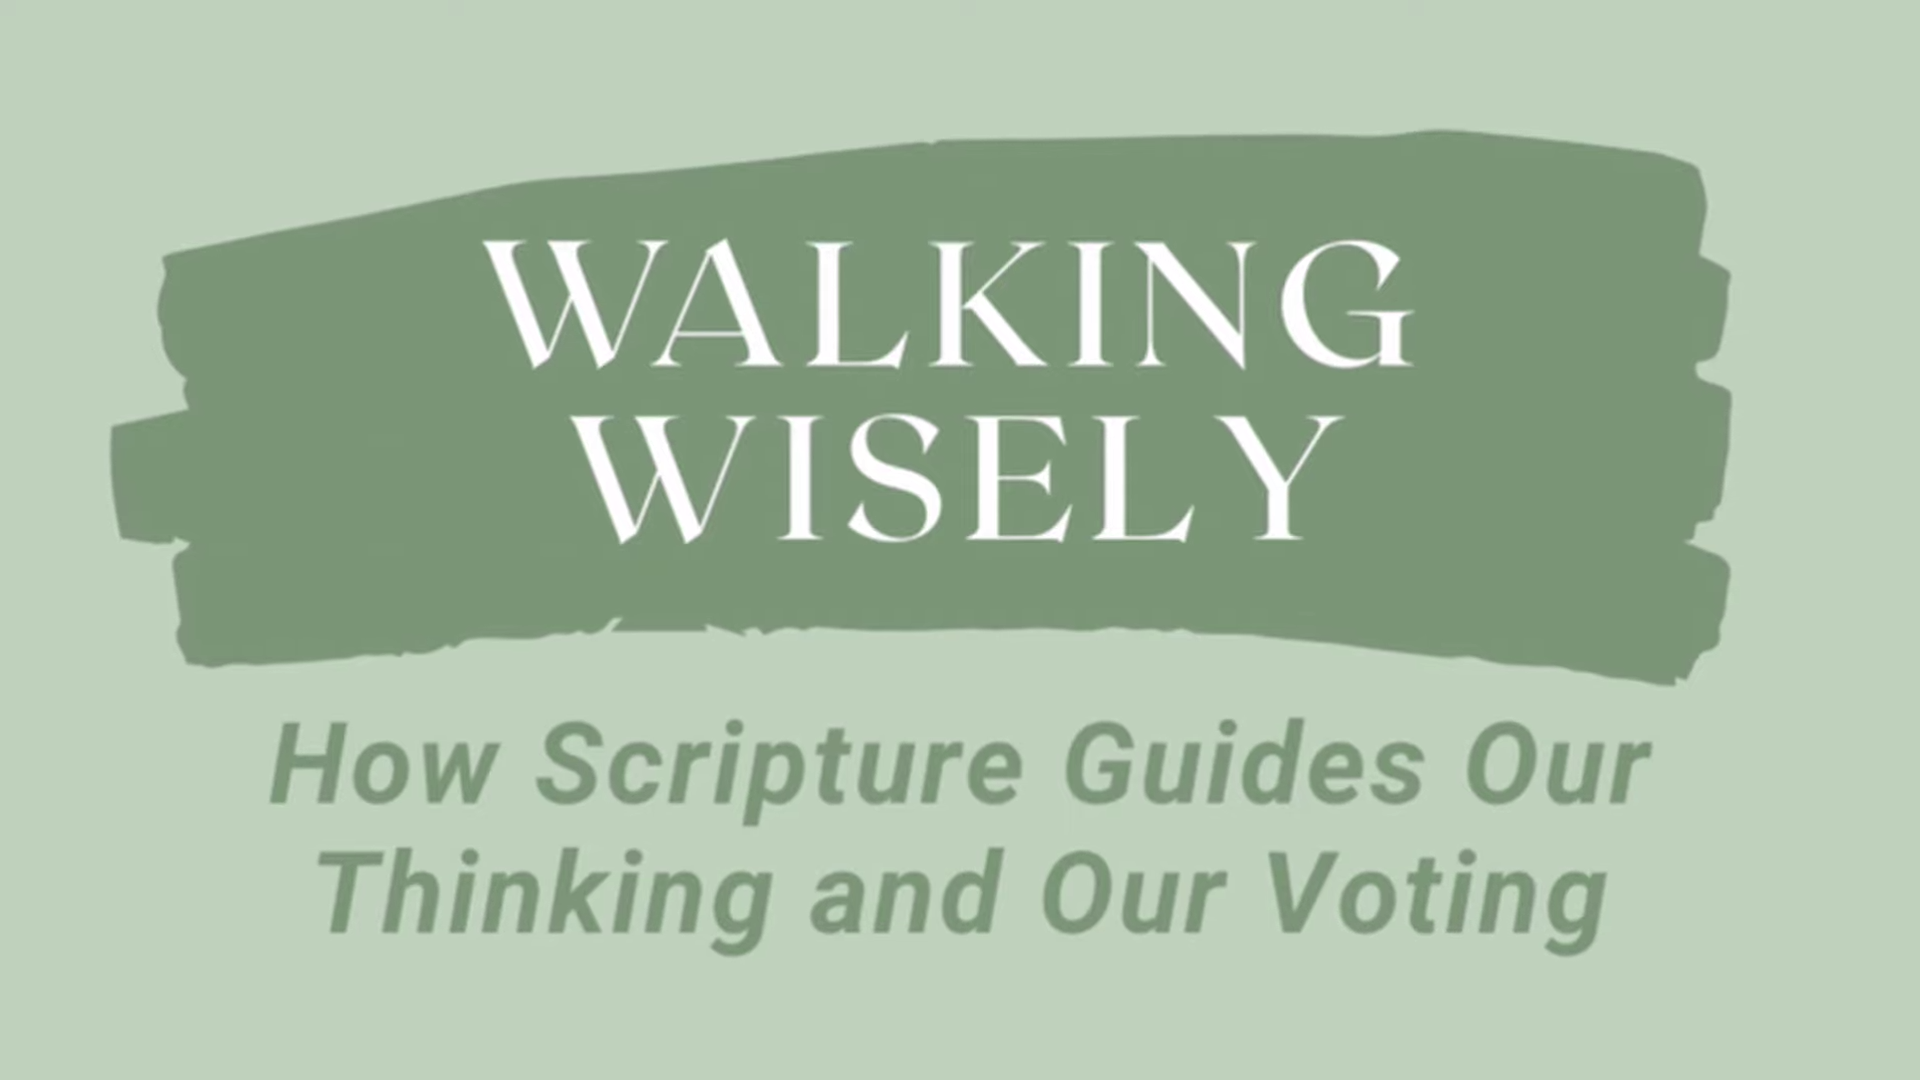 Walking Wisely: How Scripture Guides Our Thinking and Our Voting